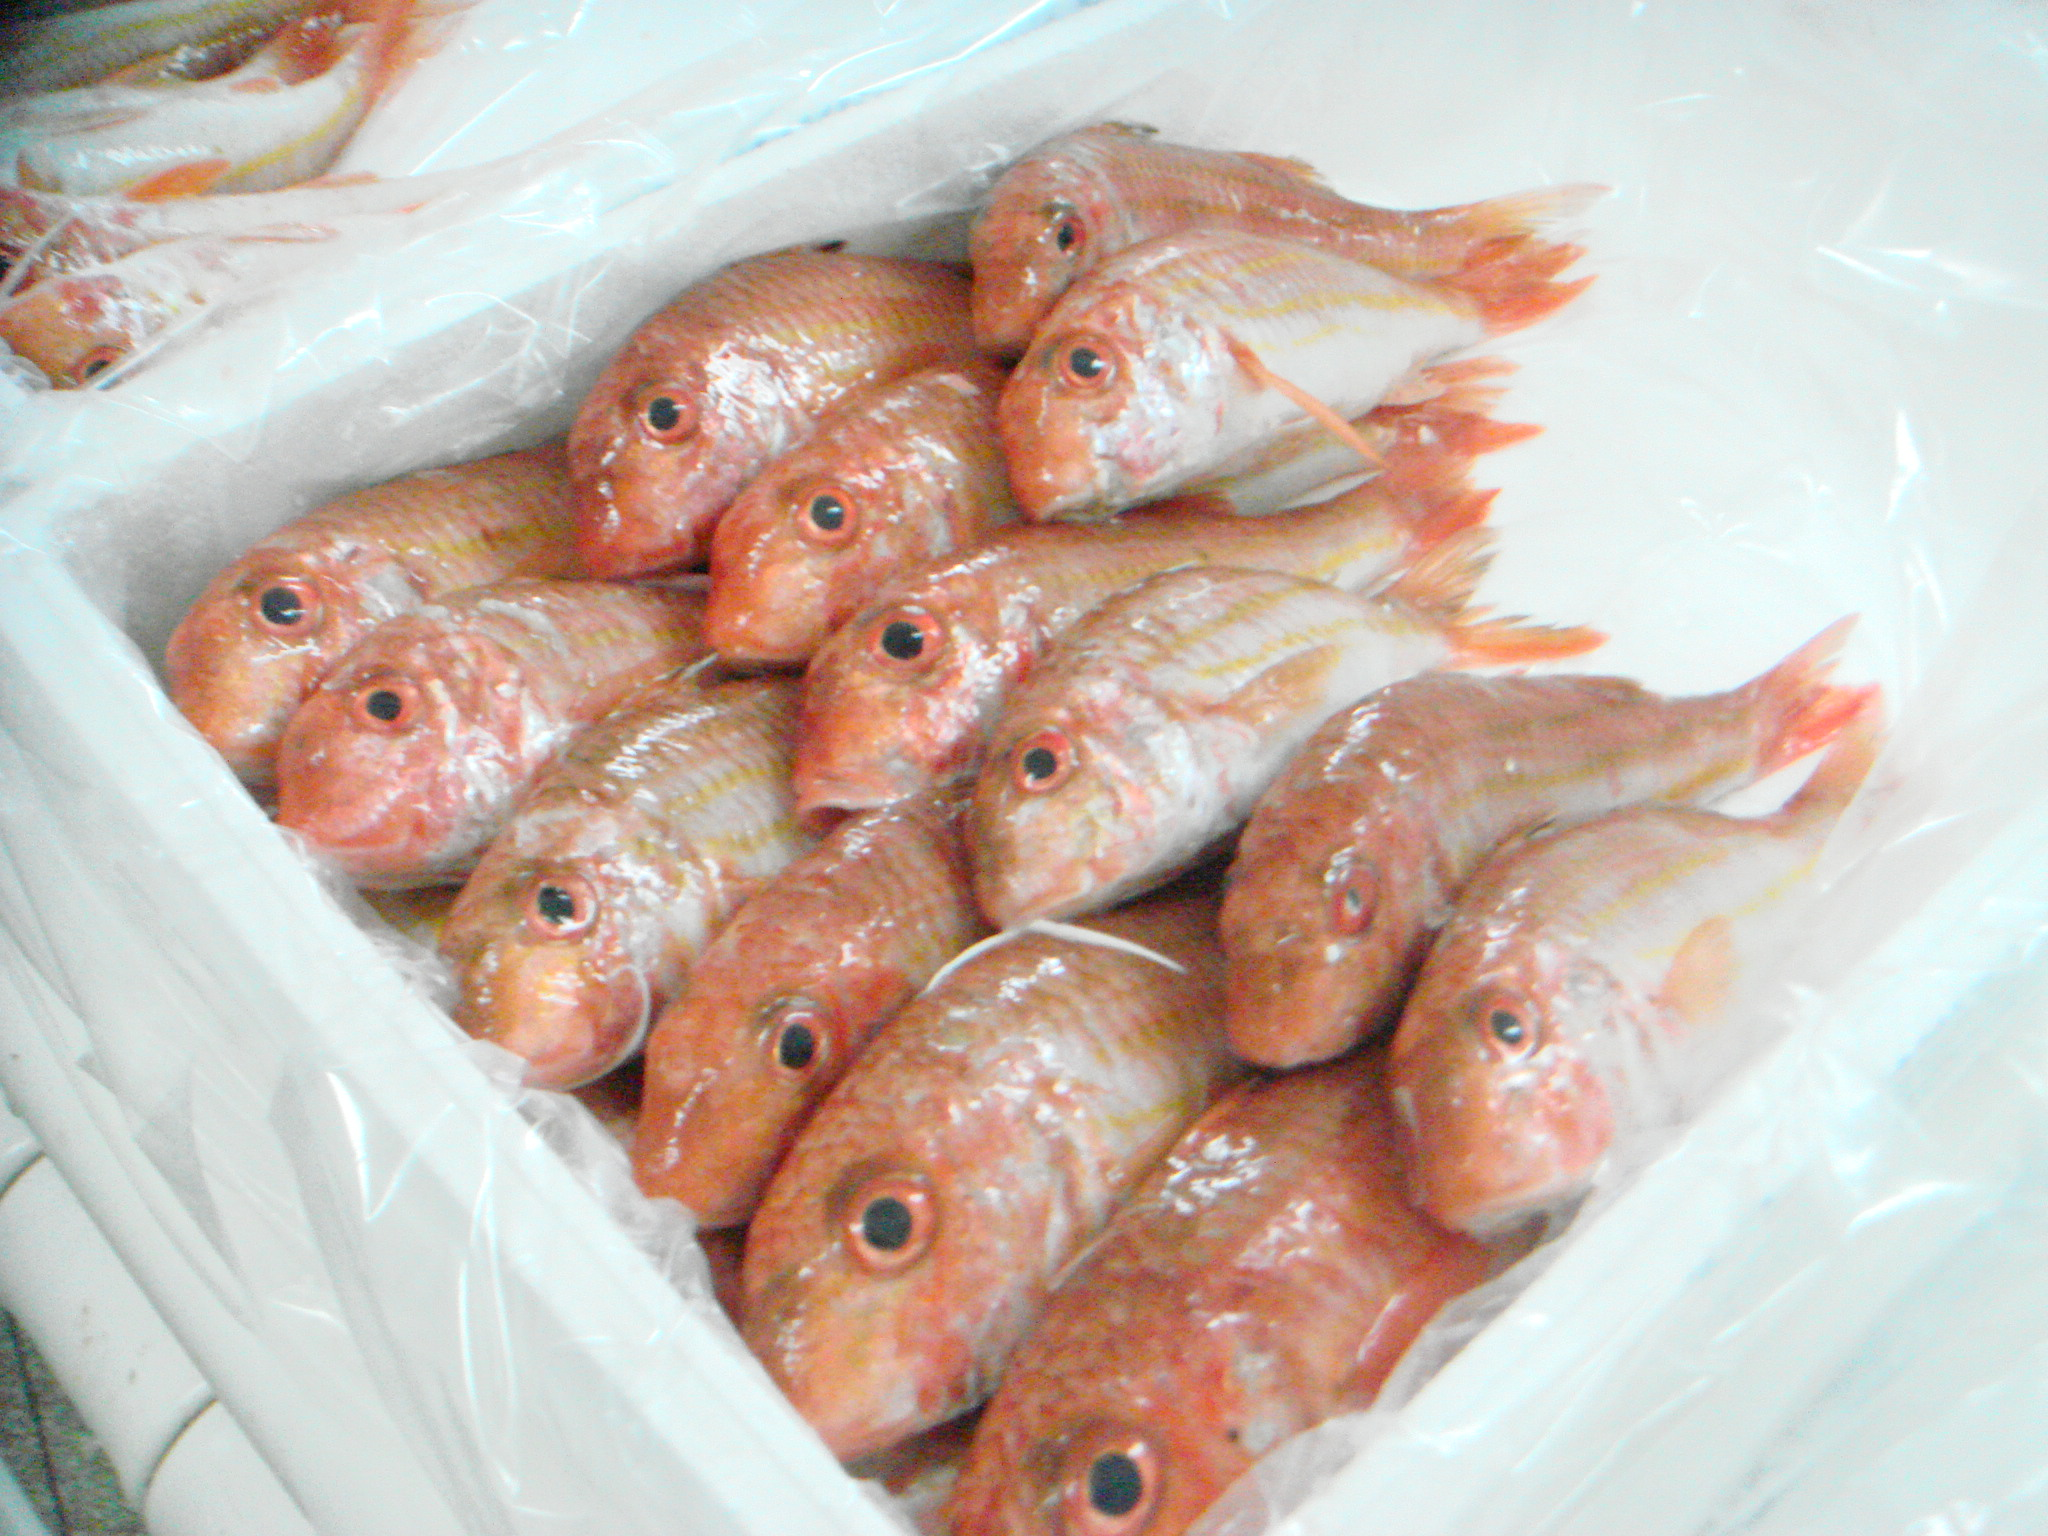 Red mullet seafoods and fish products skmrr fsbra for Red mullet fish